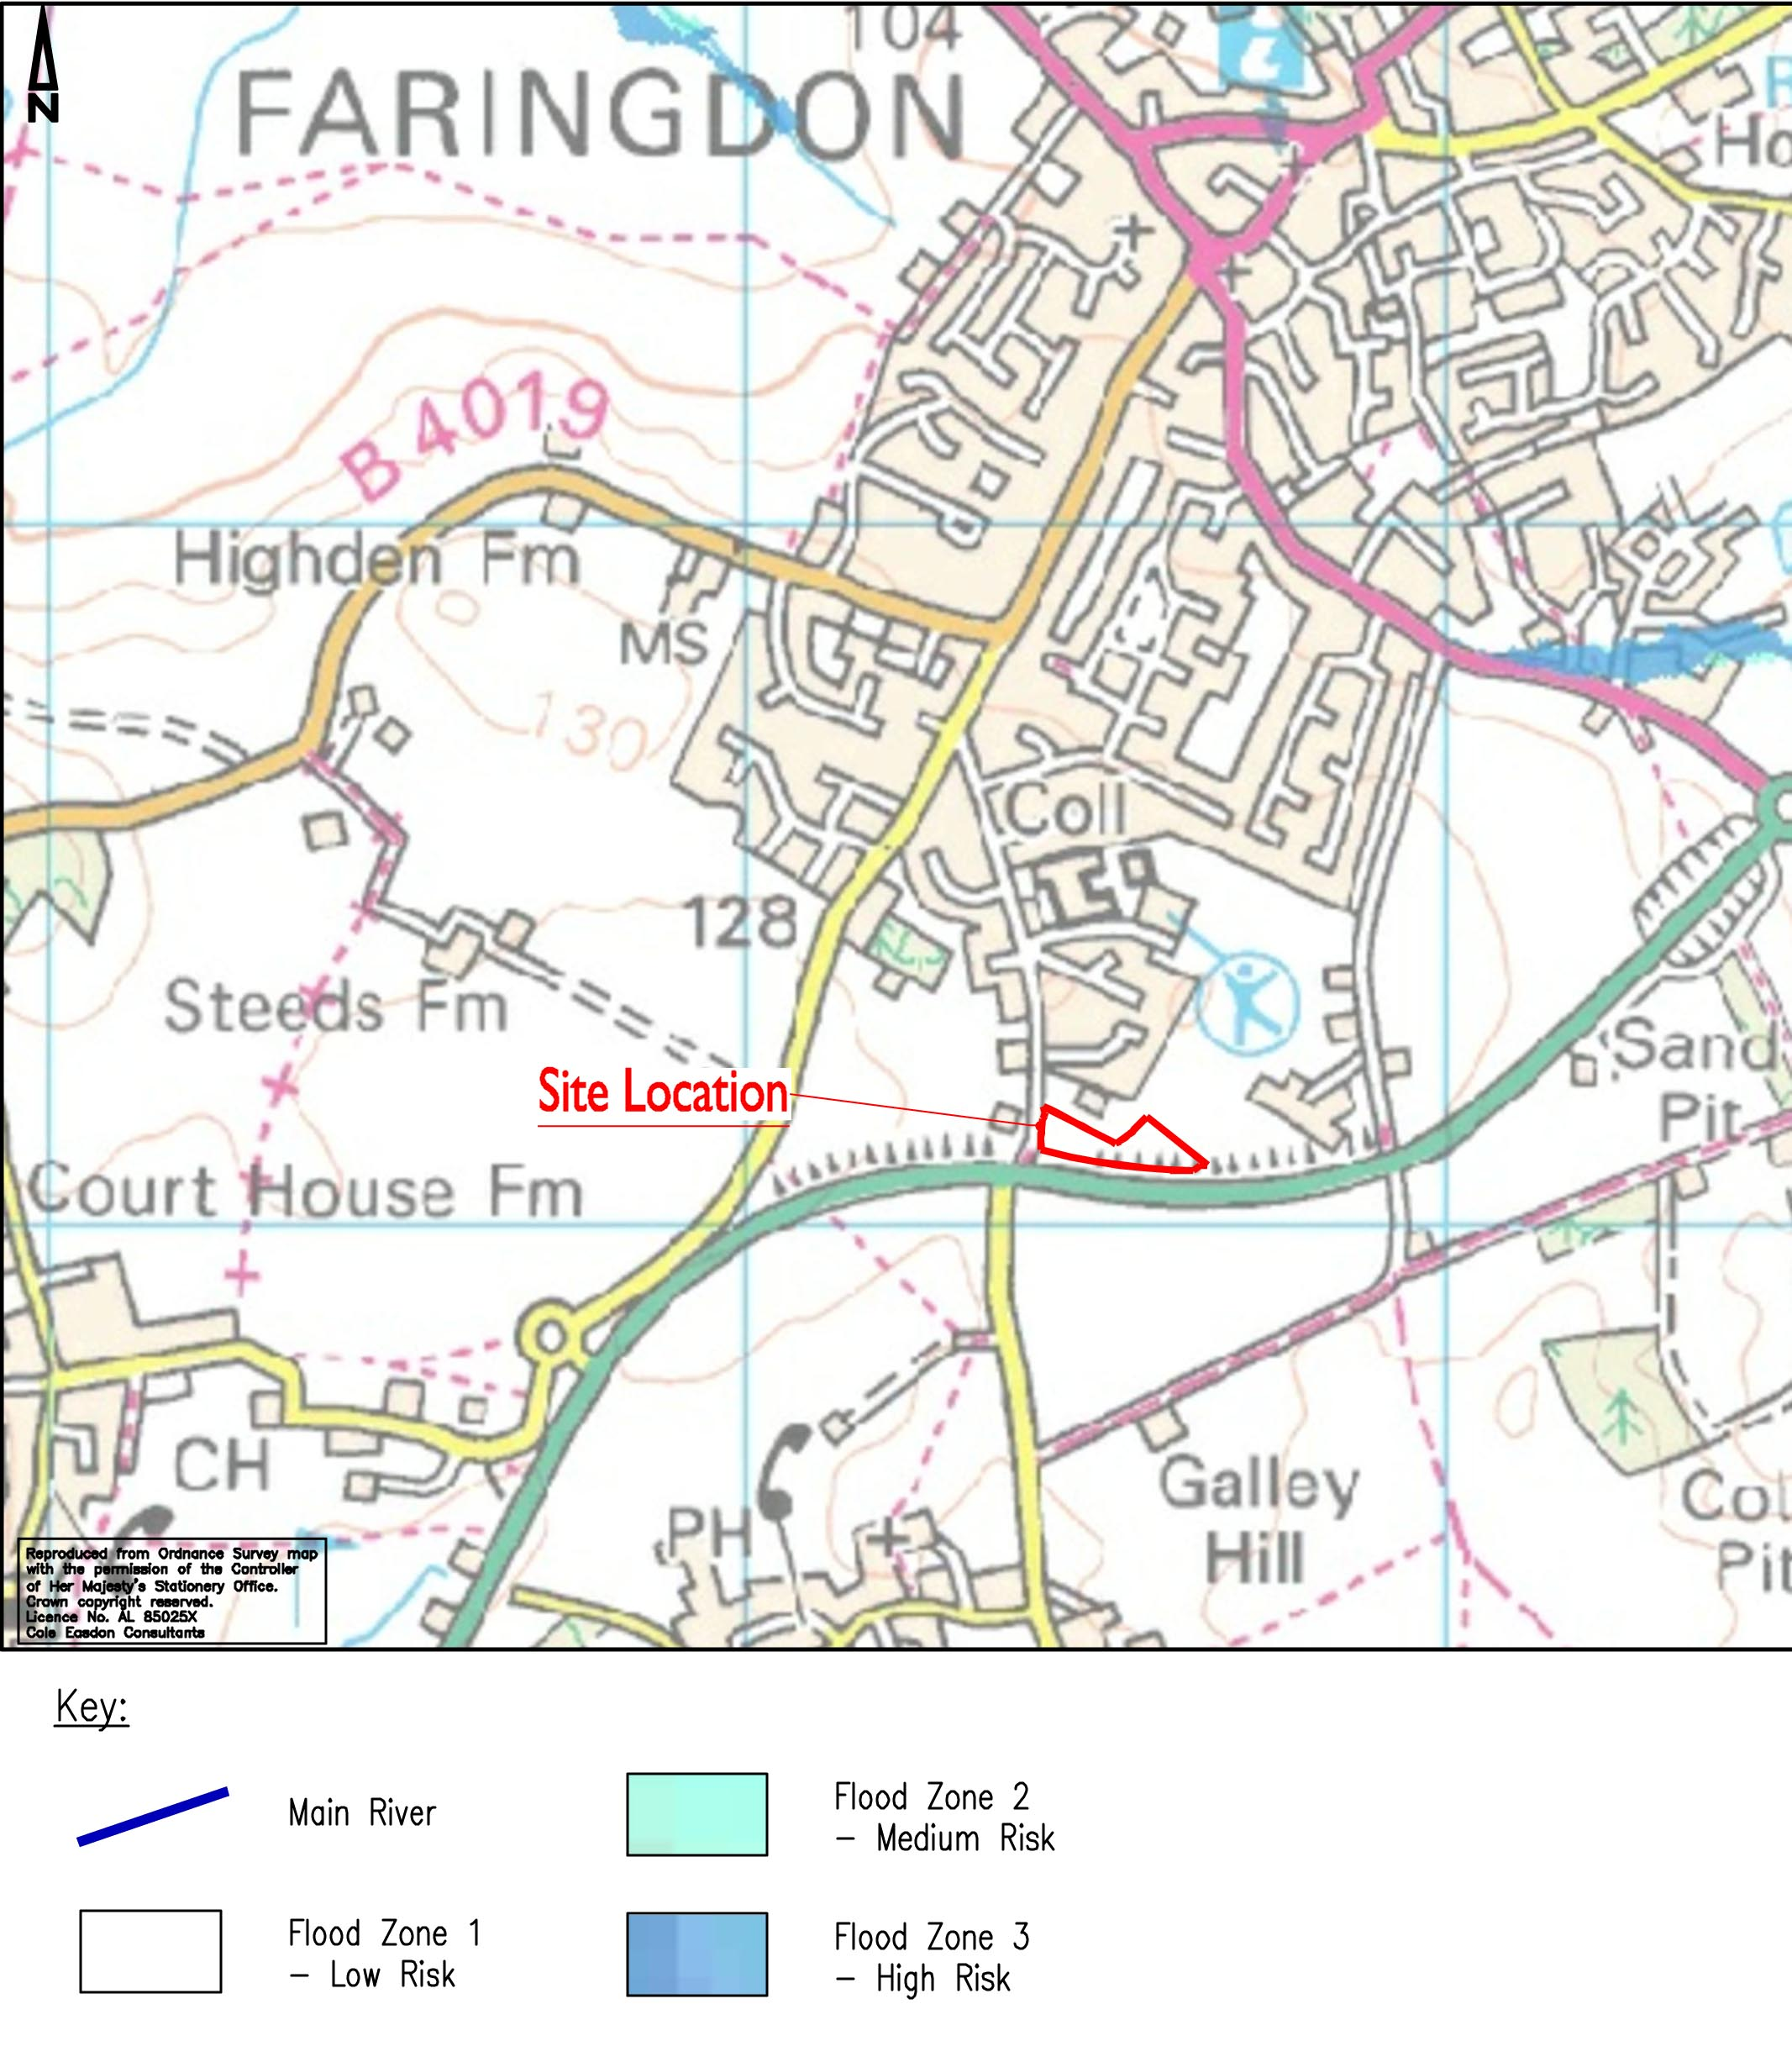 Faringdon Flood Map